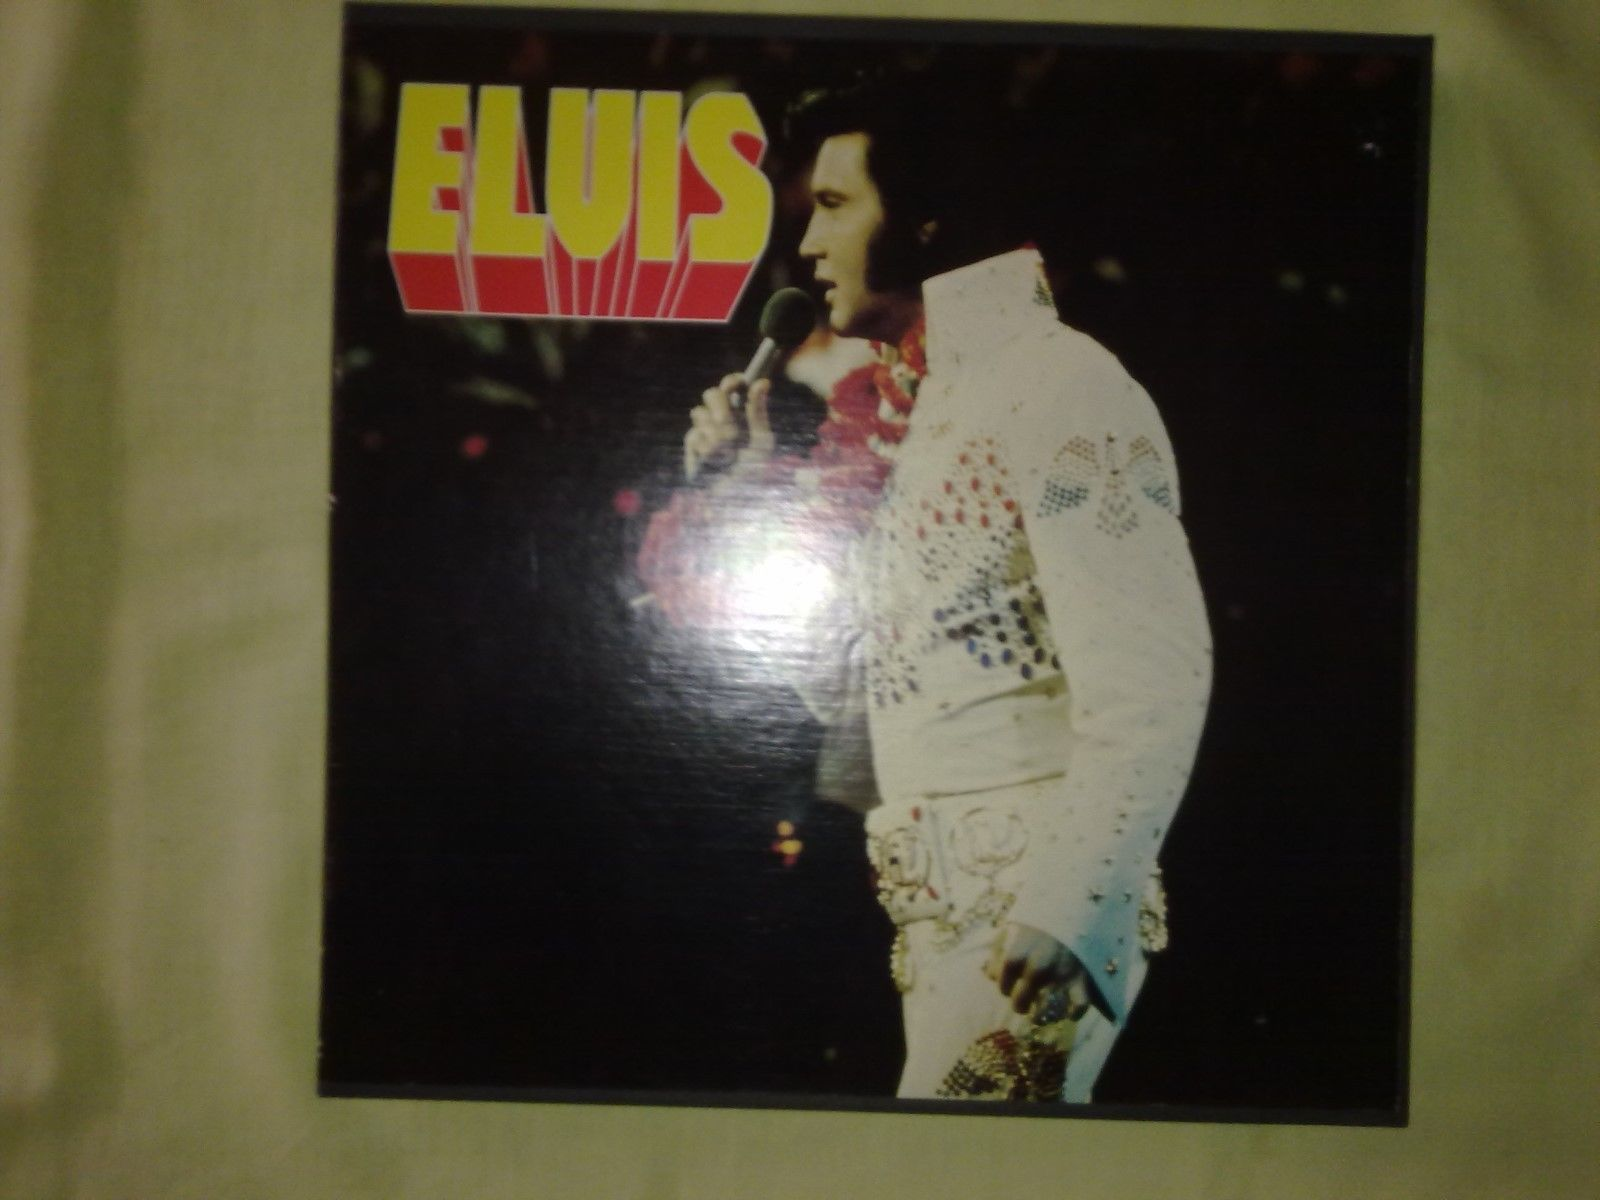 ELVIS PRESLEY 100 SUPER ROCKS 7 LP BOX SET 1976 (EX) (FRENCH ISSUE)